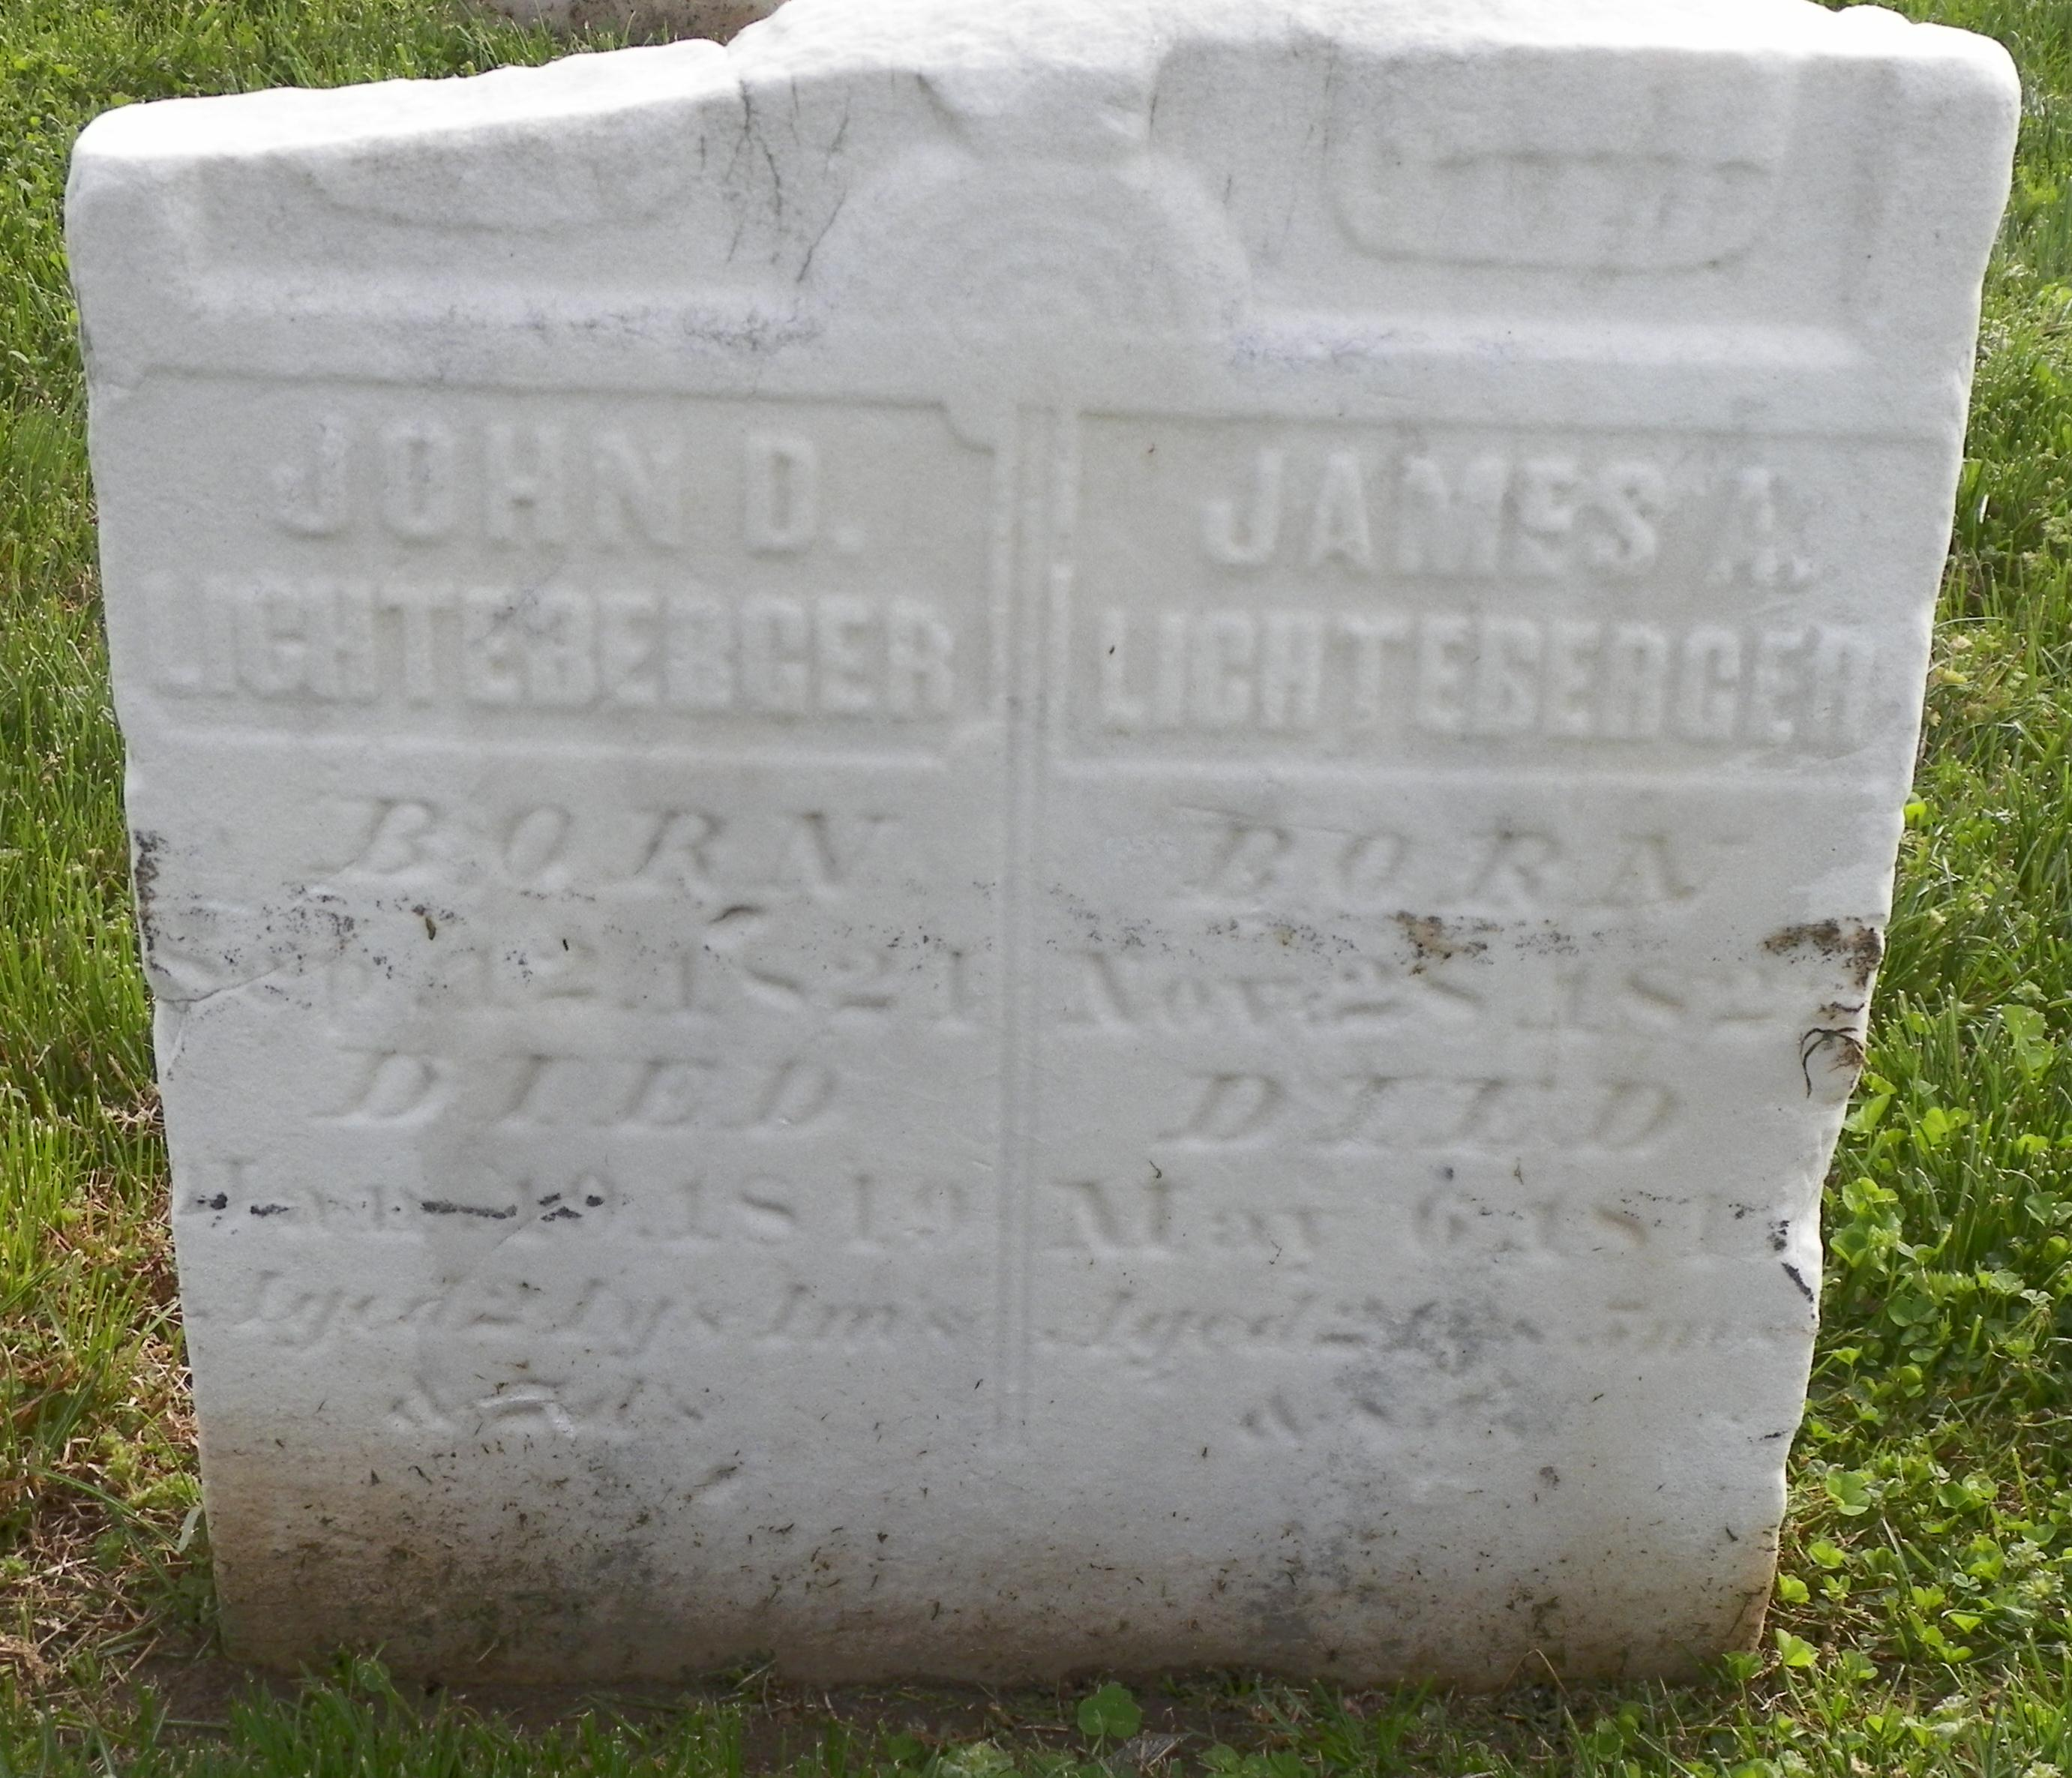 James Lichtenberger